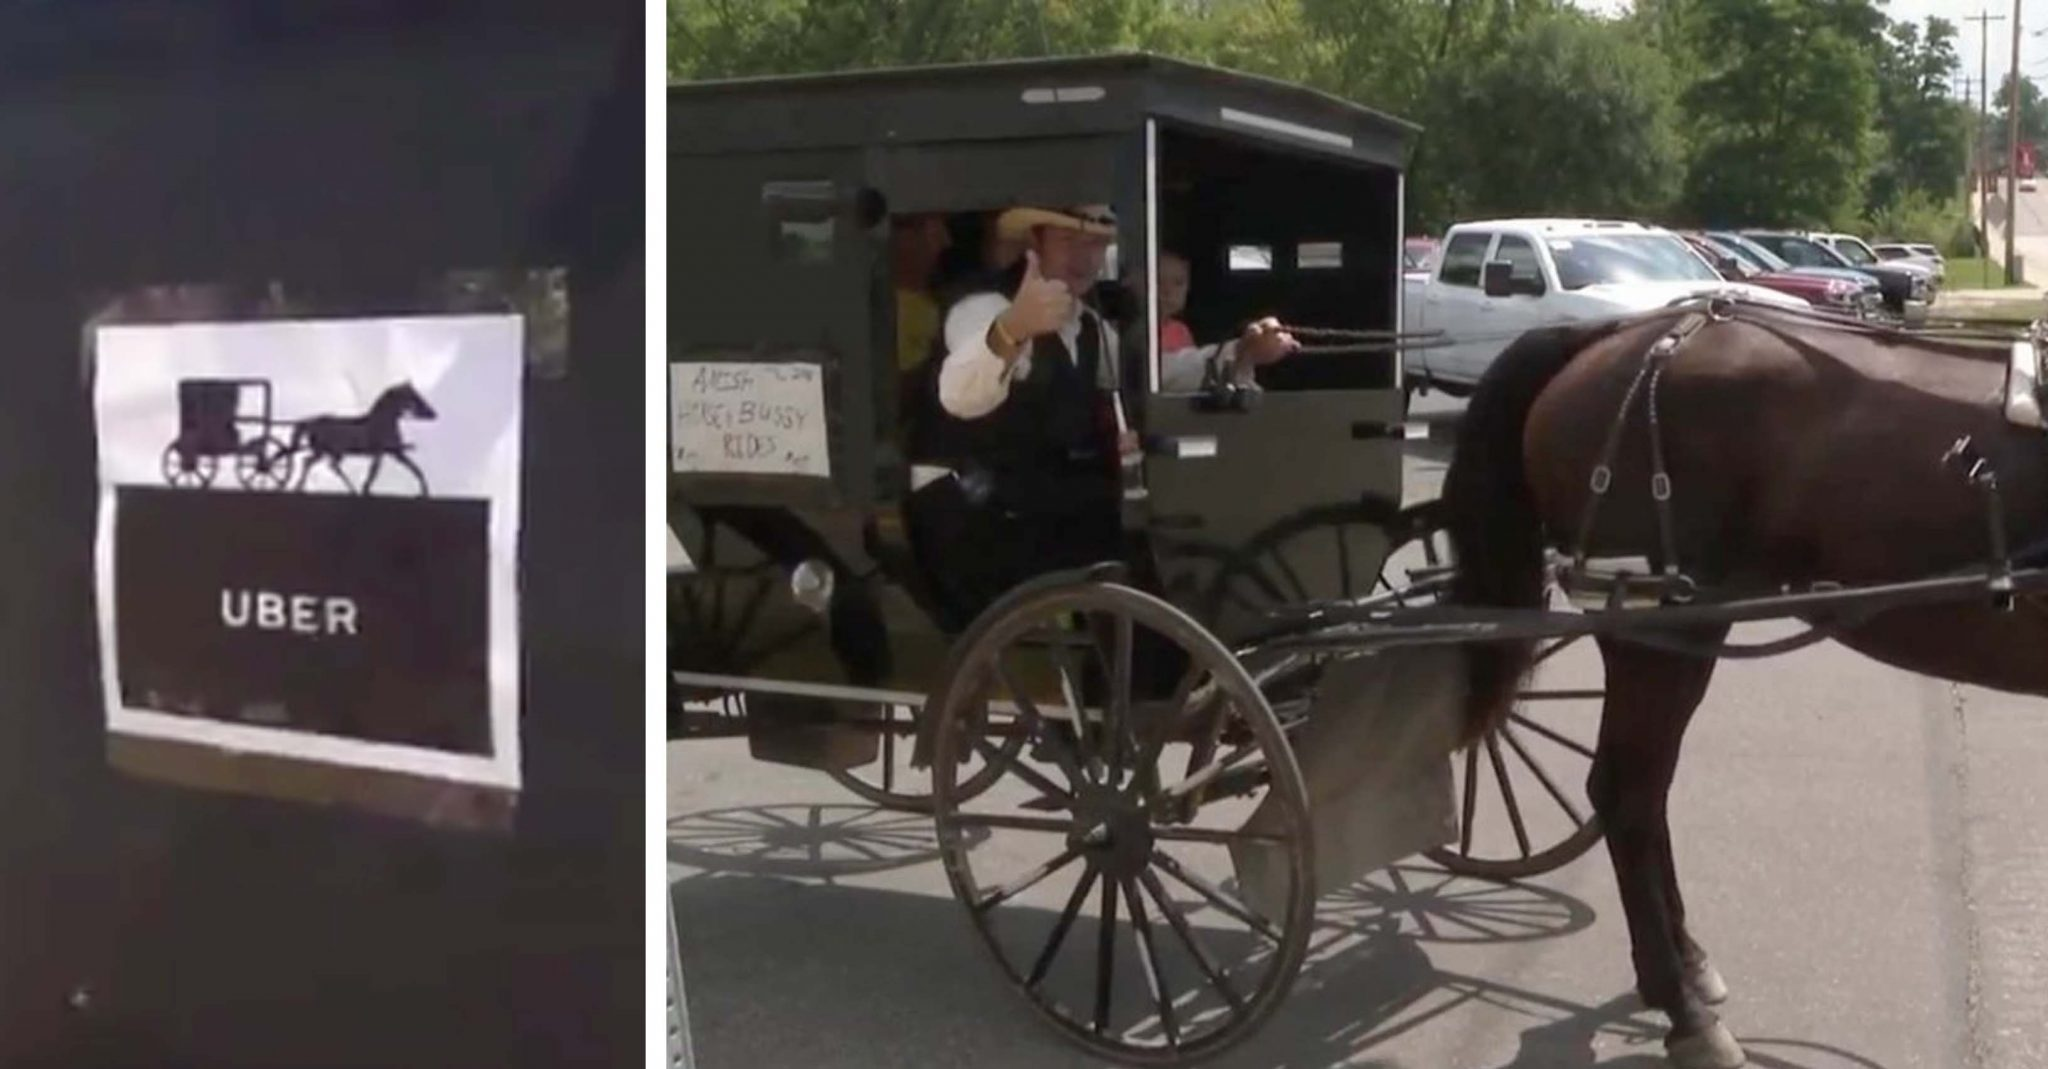 Man Creates 'Amish Uber' Out Of Buggy And Horse